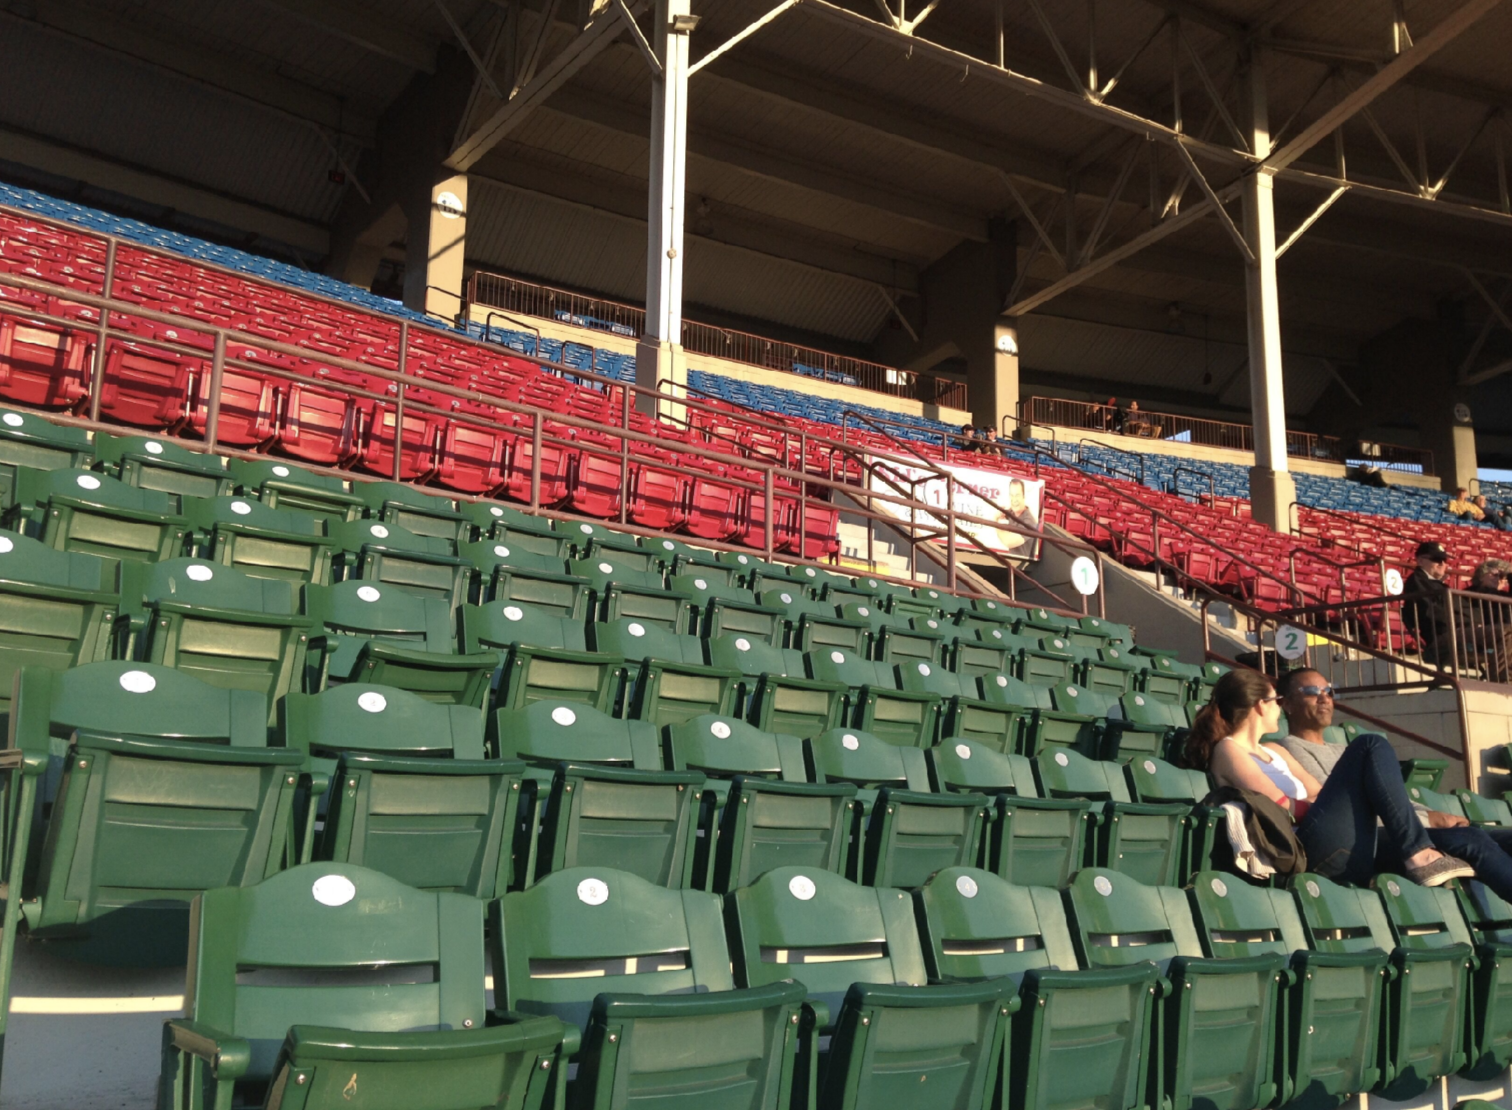 GoLocalProv | PawSox Edge Closer to Worcester, What Will Be